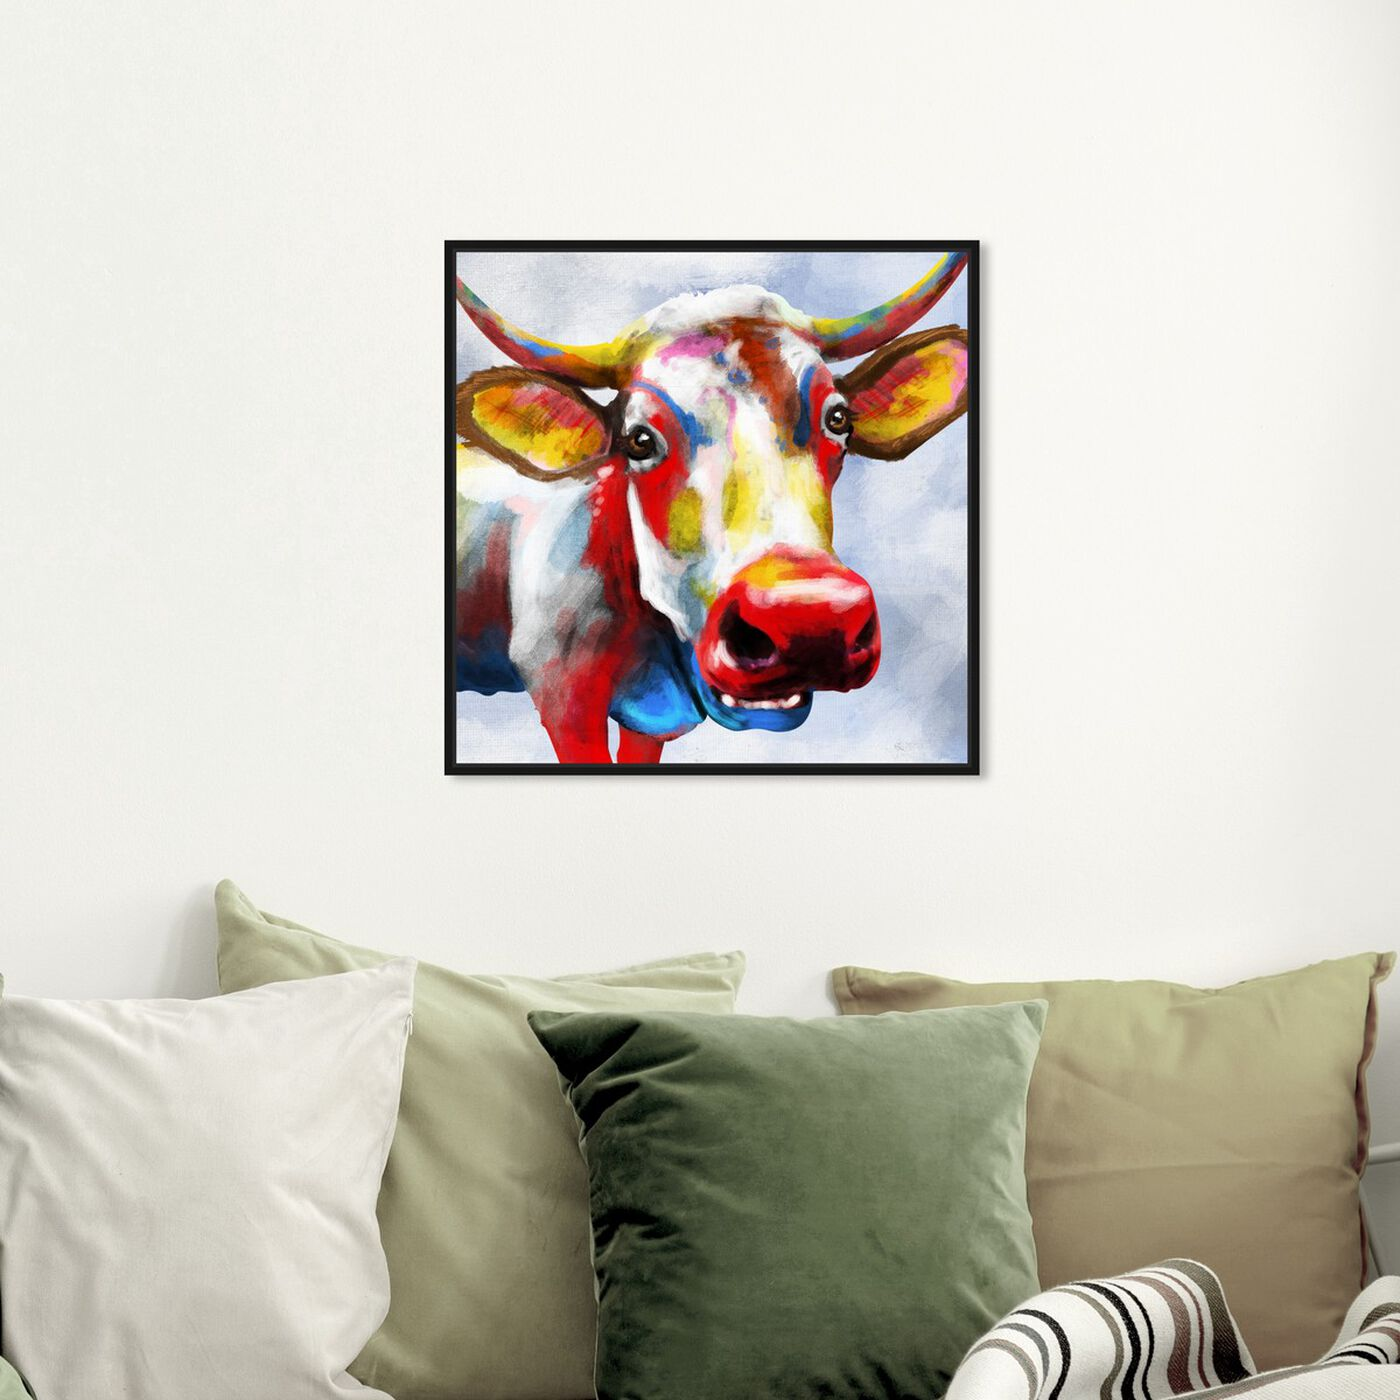 Hanging view of Color Spash Bovine featuring animals and farm animals art.